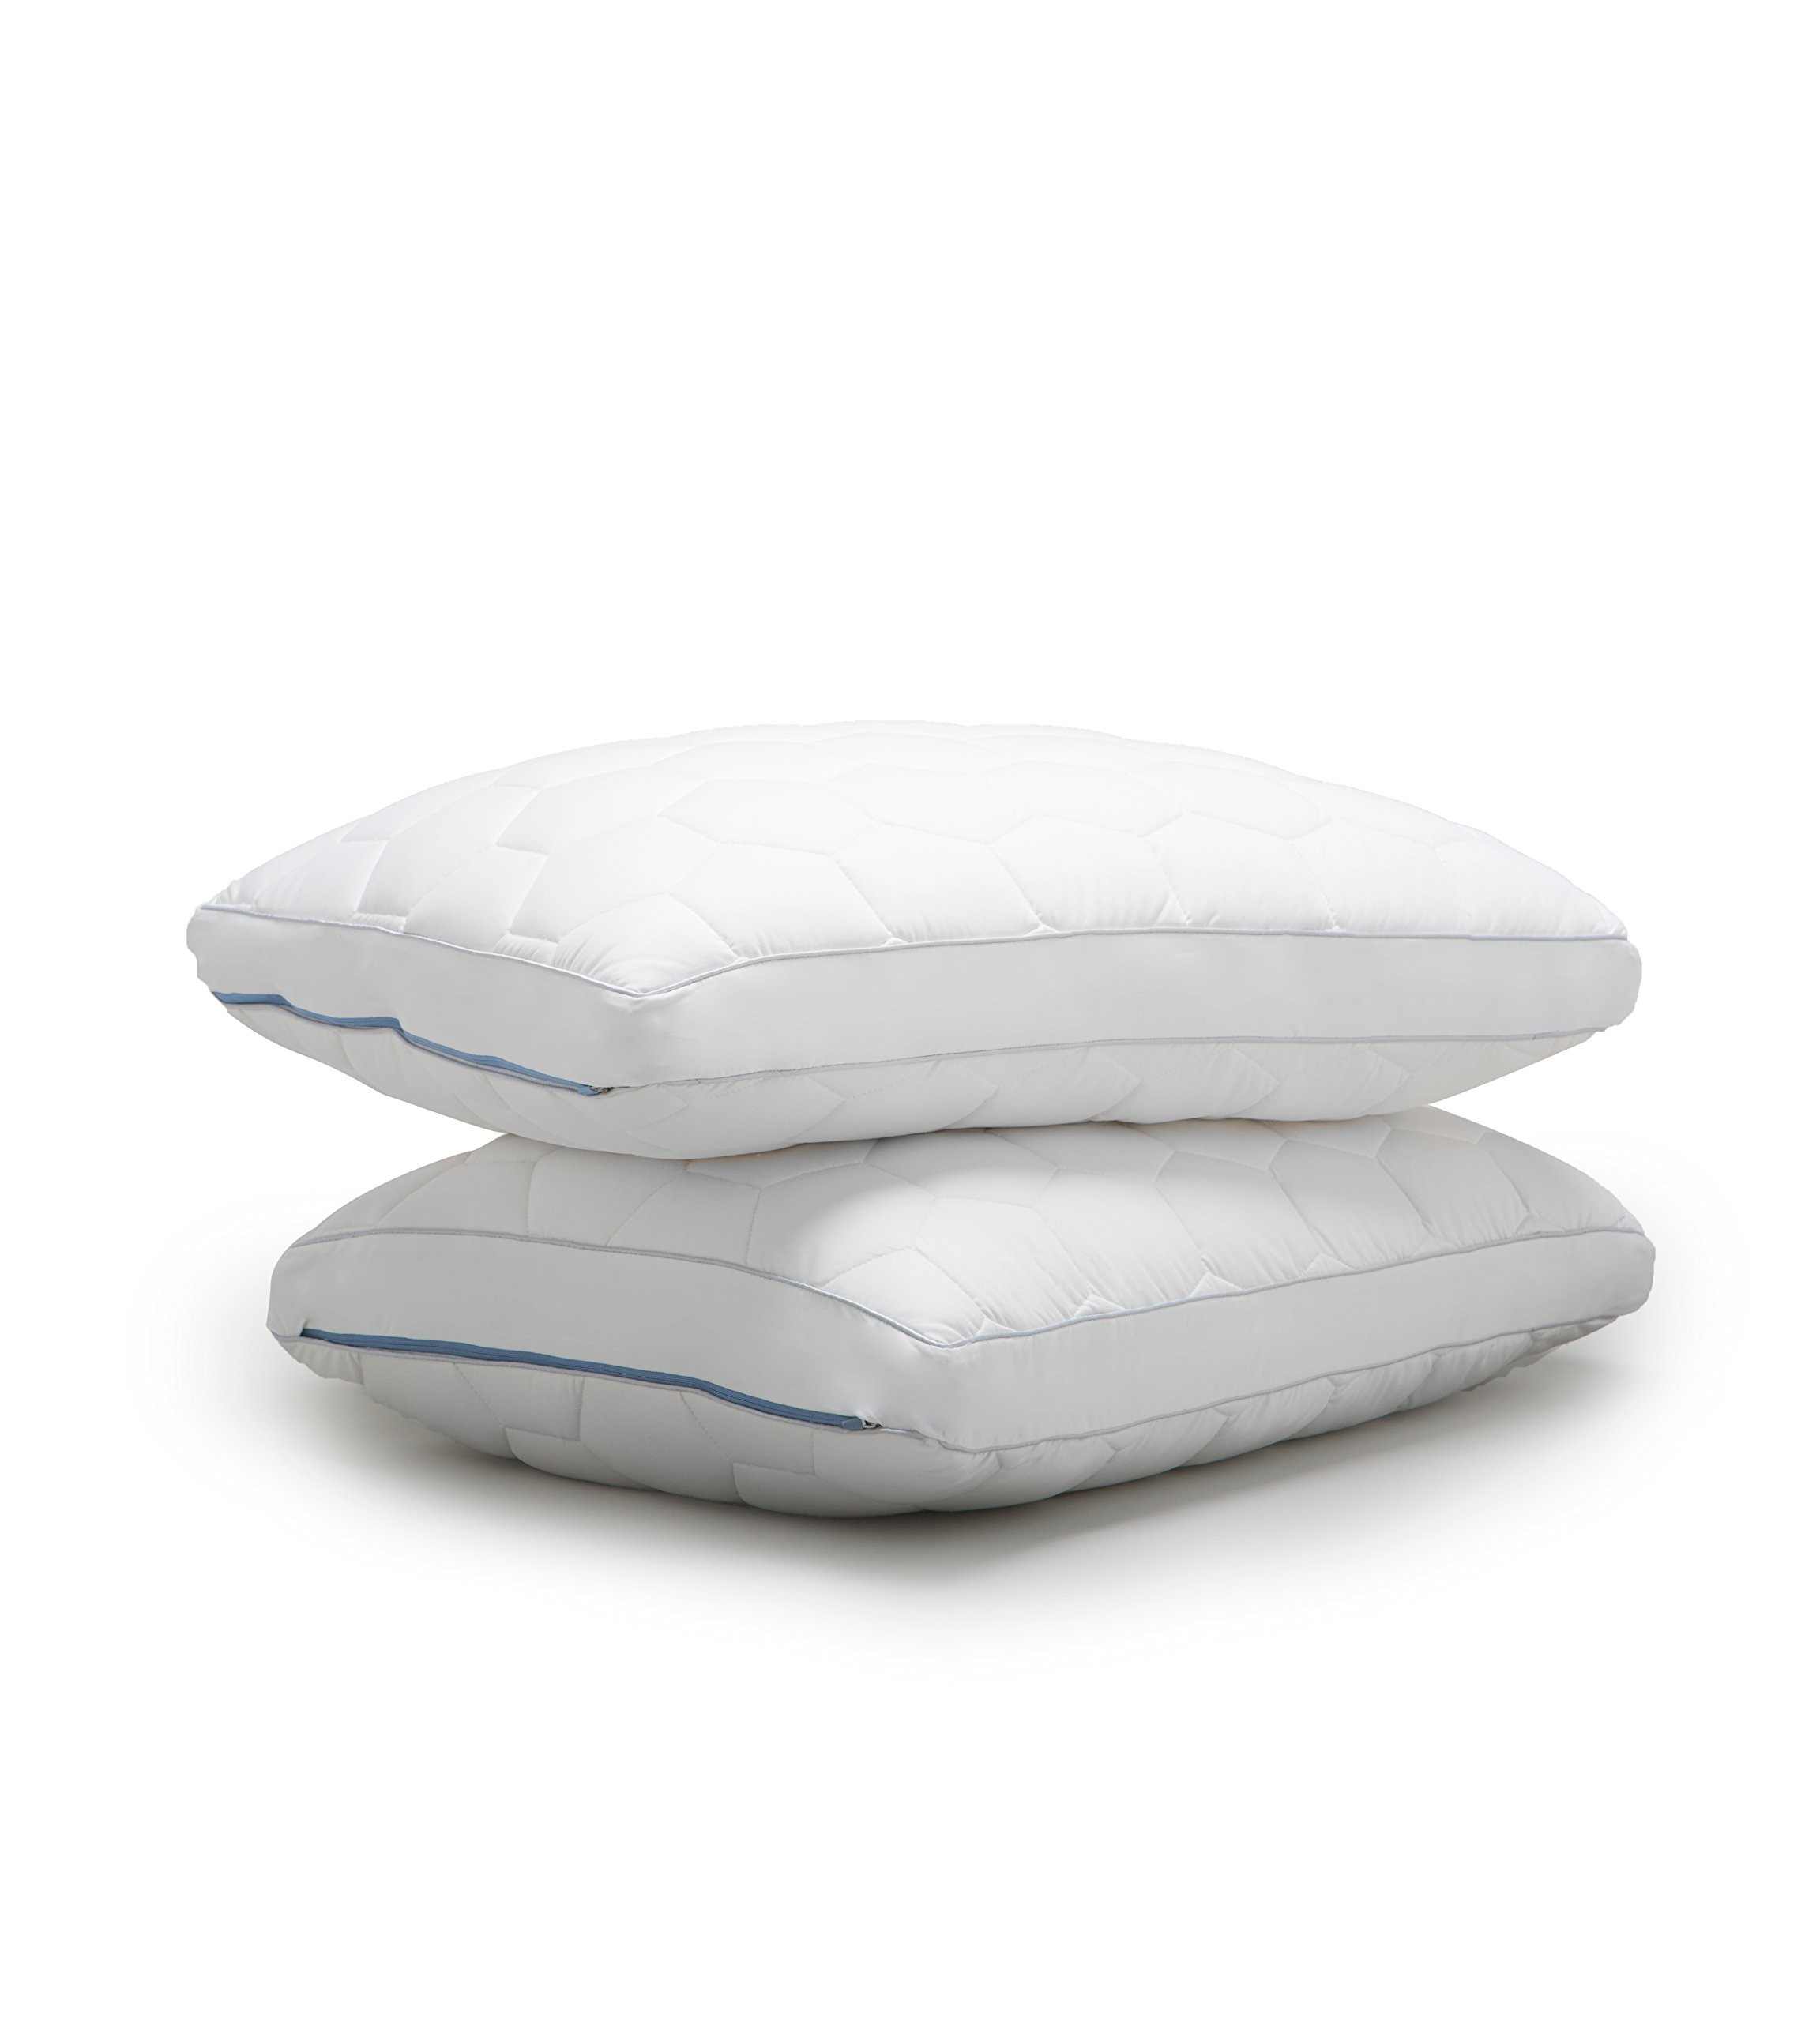 SHEEX ORIGINAL PERFORMANCE Down Alternative Side Sleeper Pillow, All of the Softness of Down Pillows with None of the Allergies (Standard/Queen)